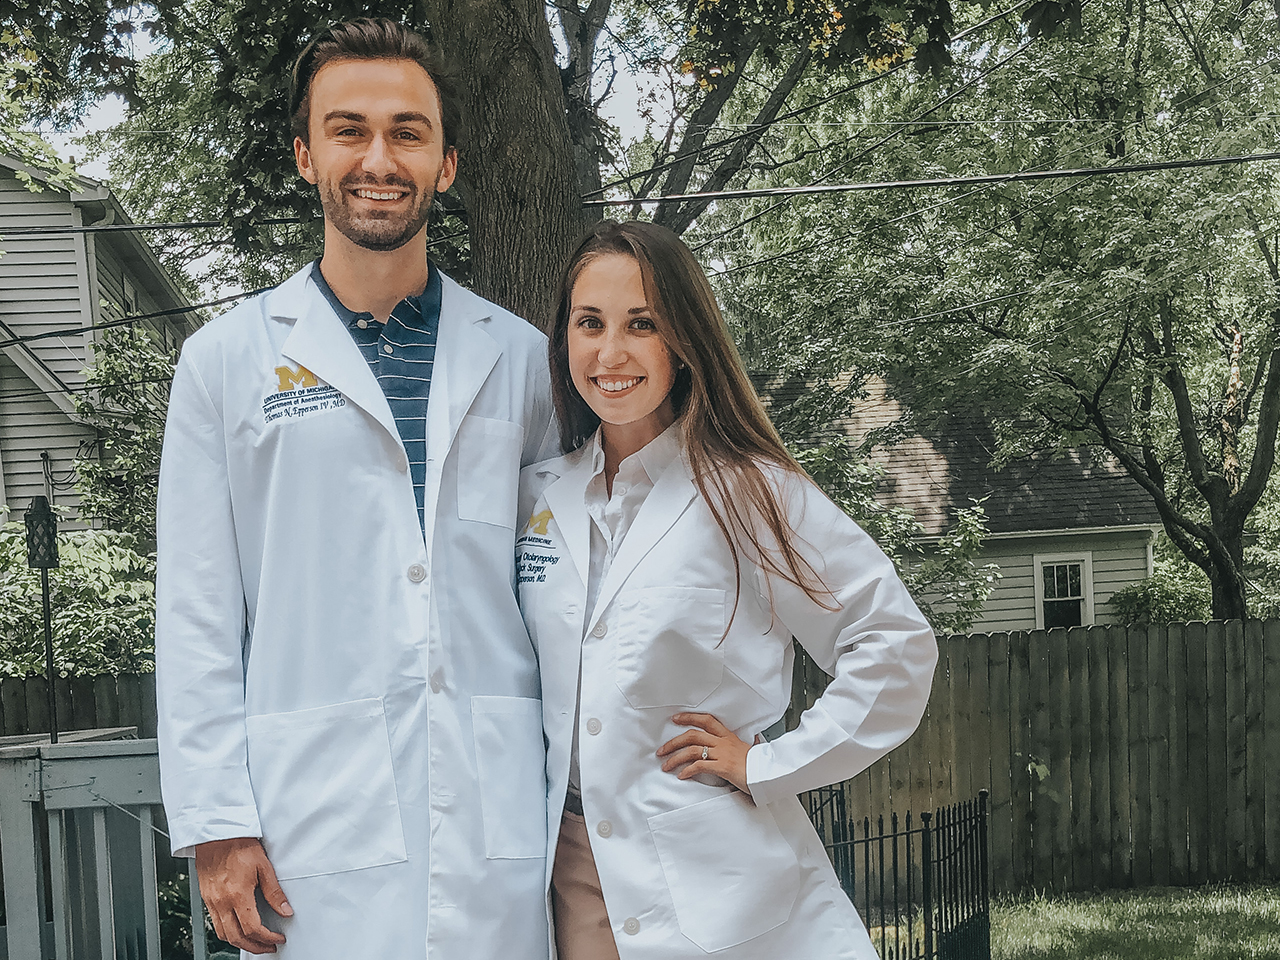 Drs. Thomas and Madison Epperson